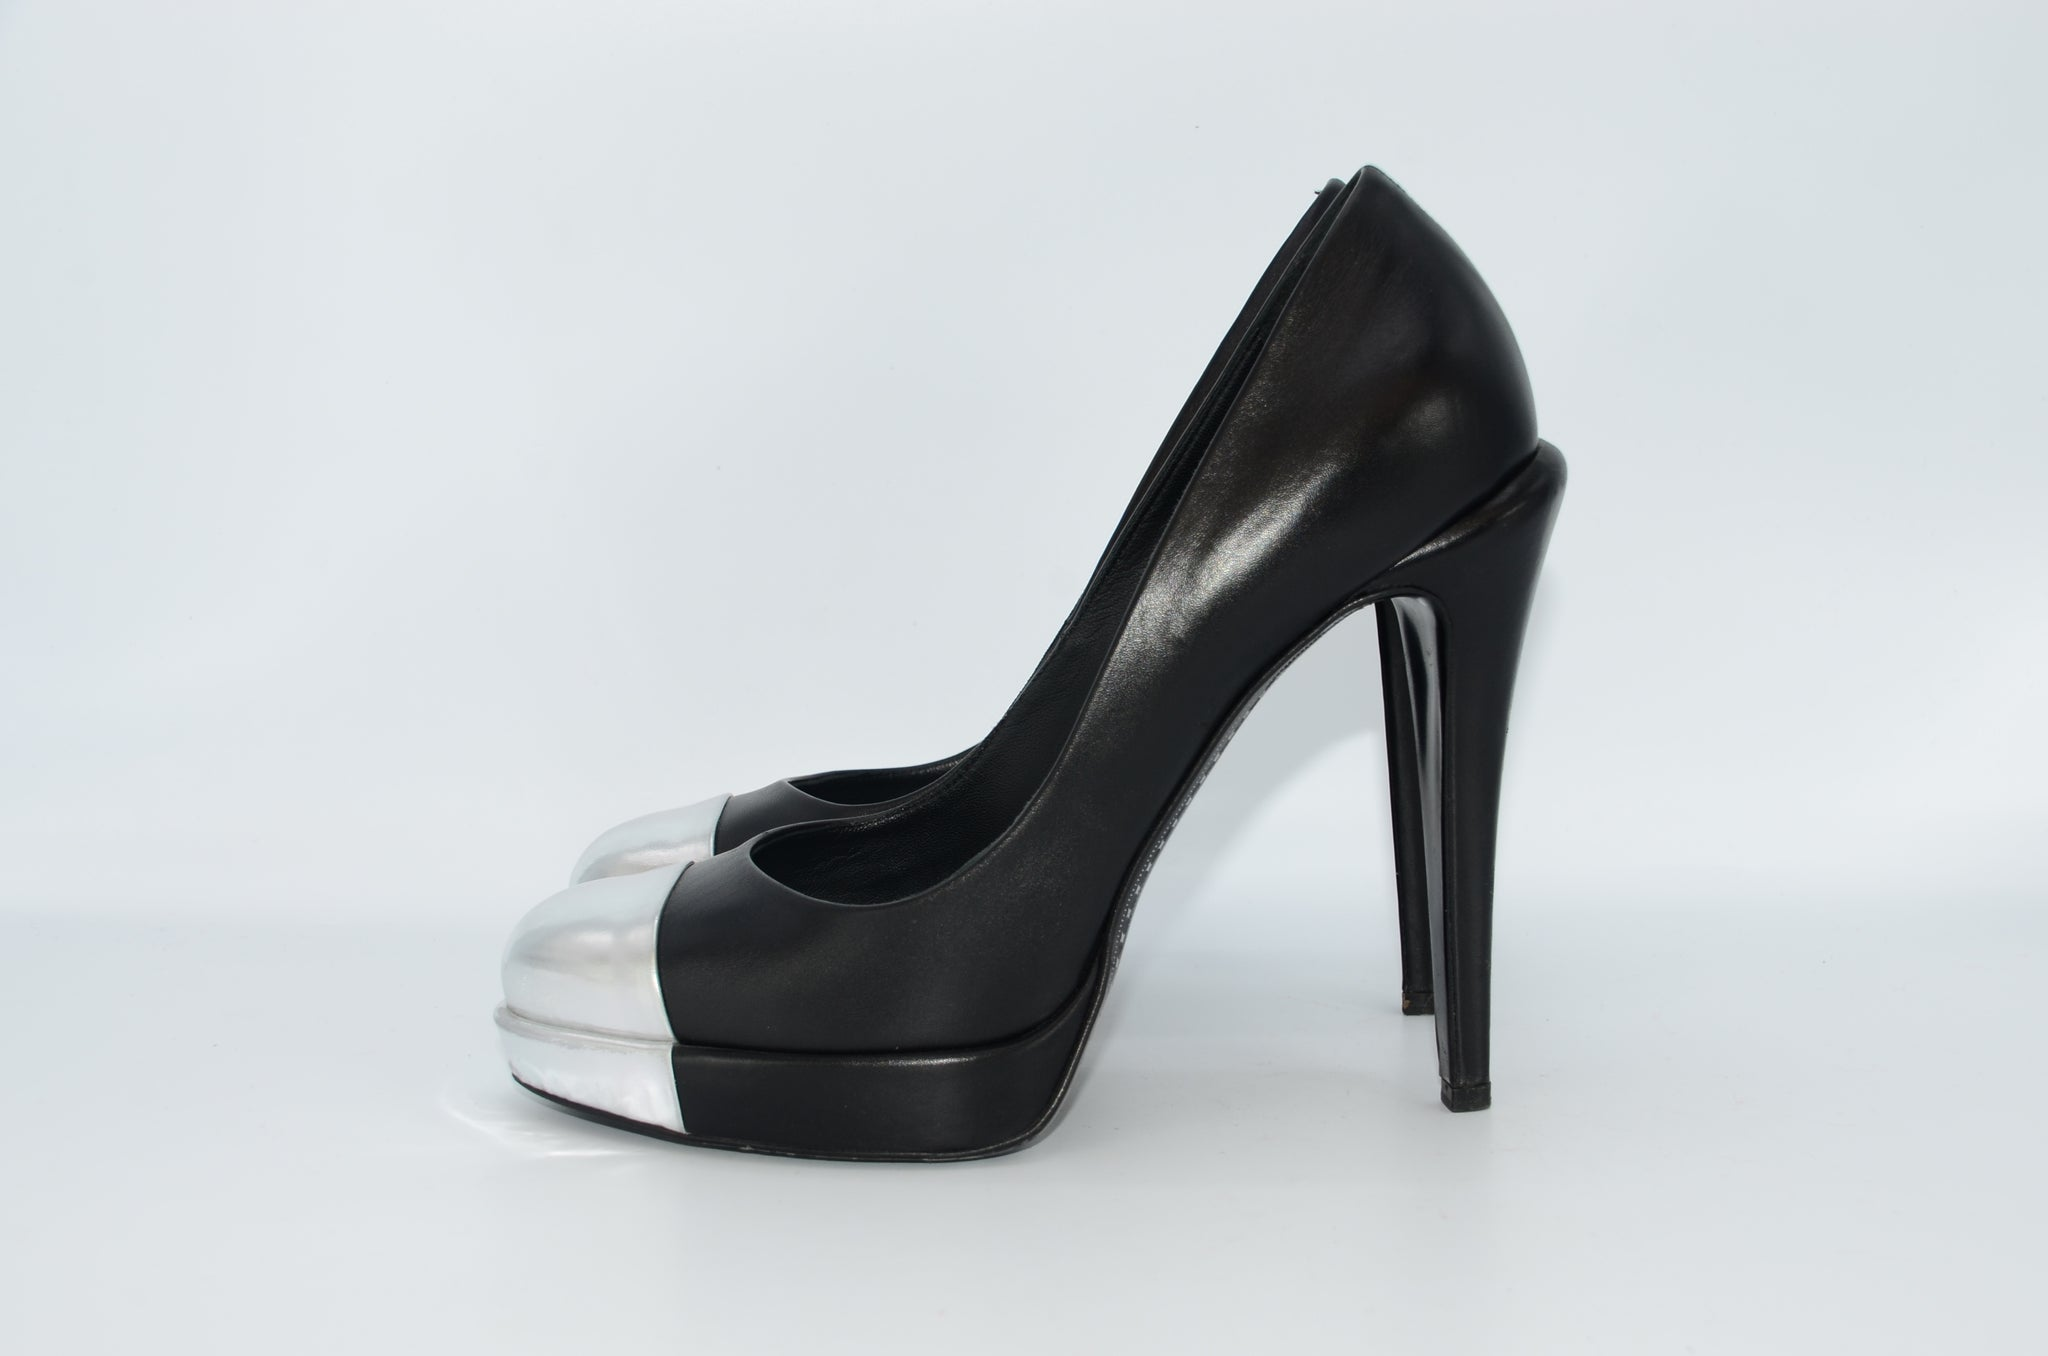 Chanel Cap Toe Platform Pumps